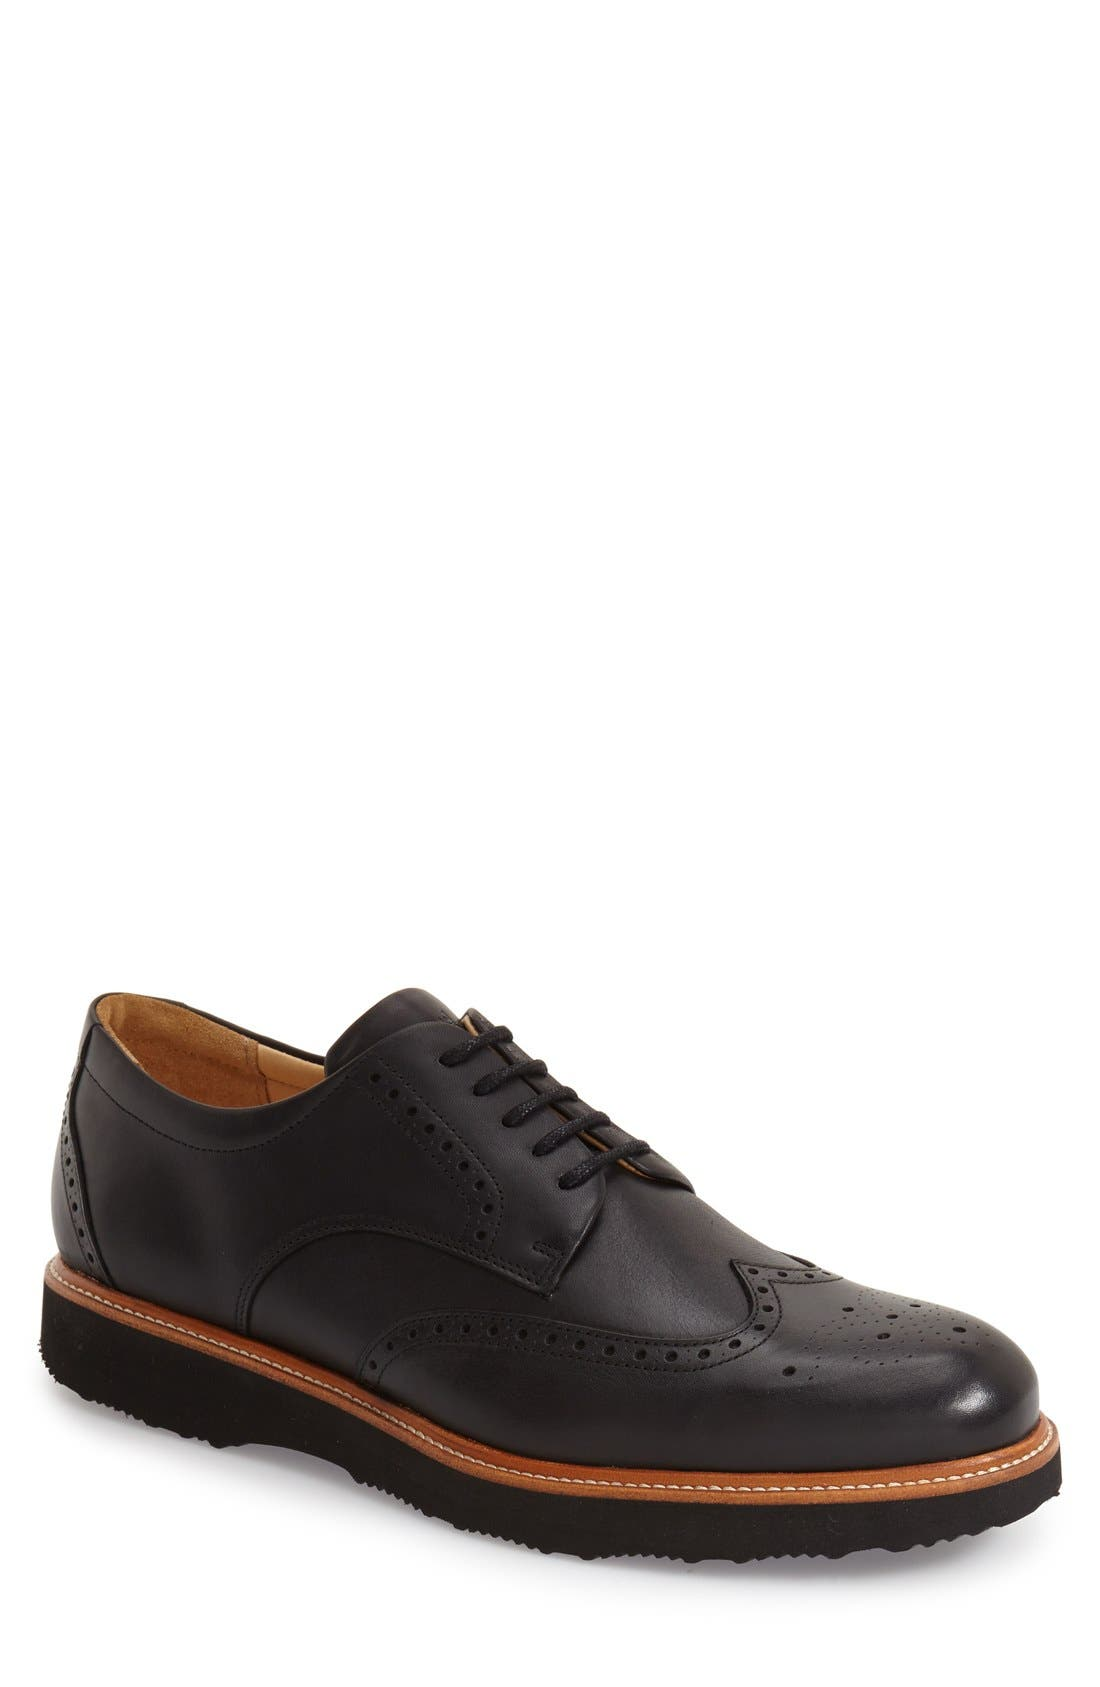 'Tipping Point' Wingtip Oxford,                             Main thumbnail 1, color,                             BLACK